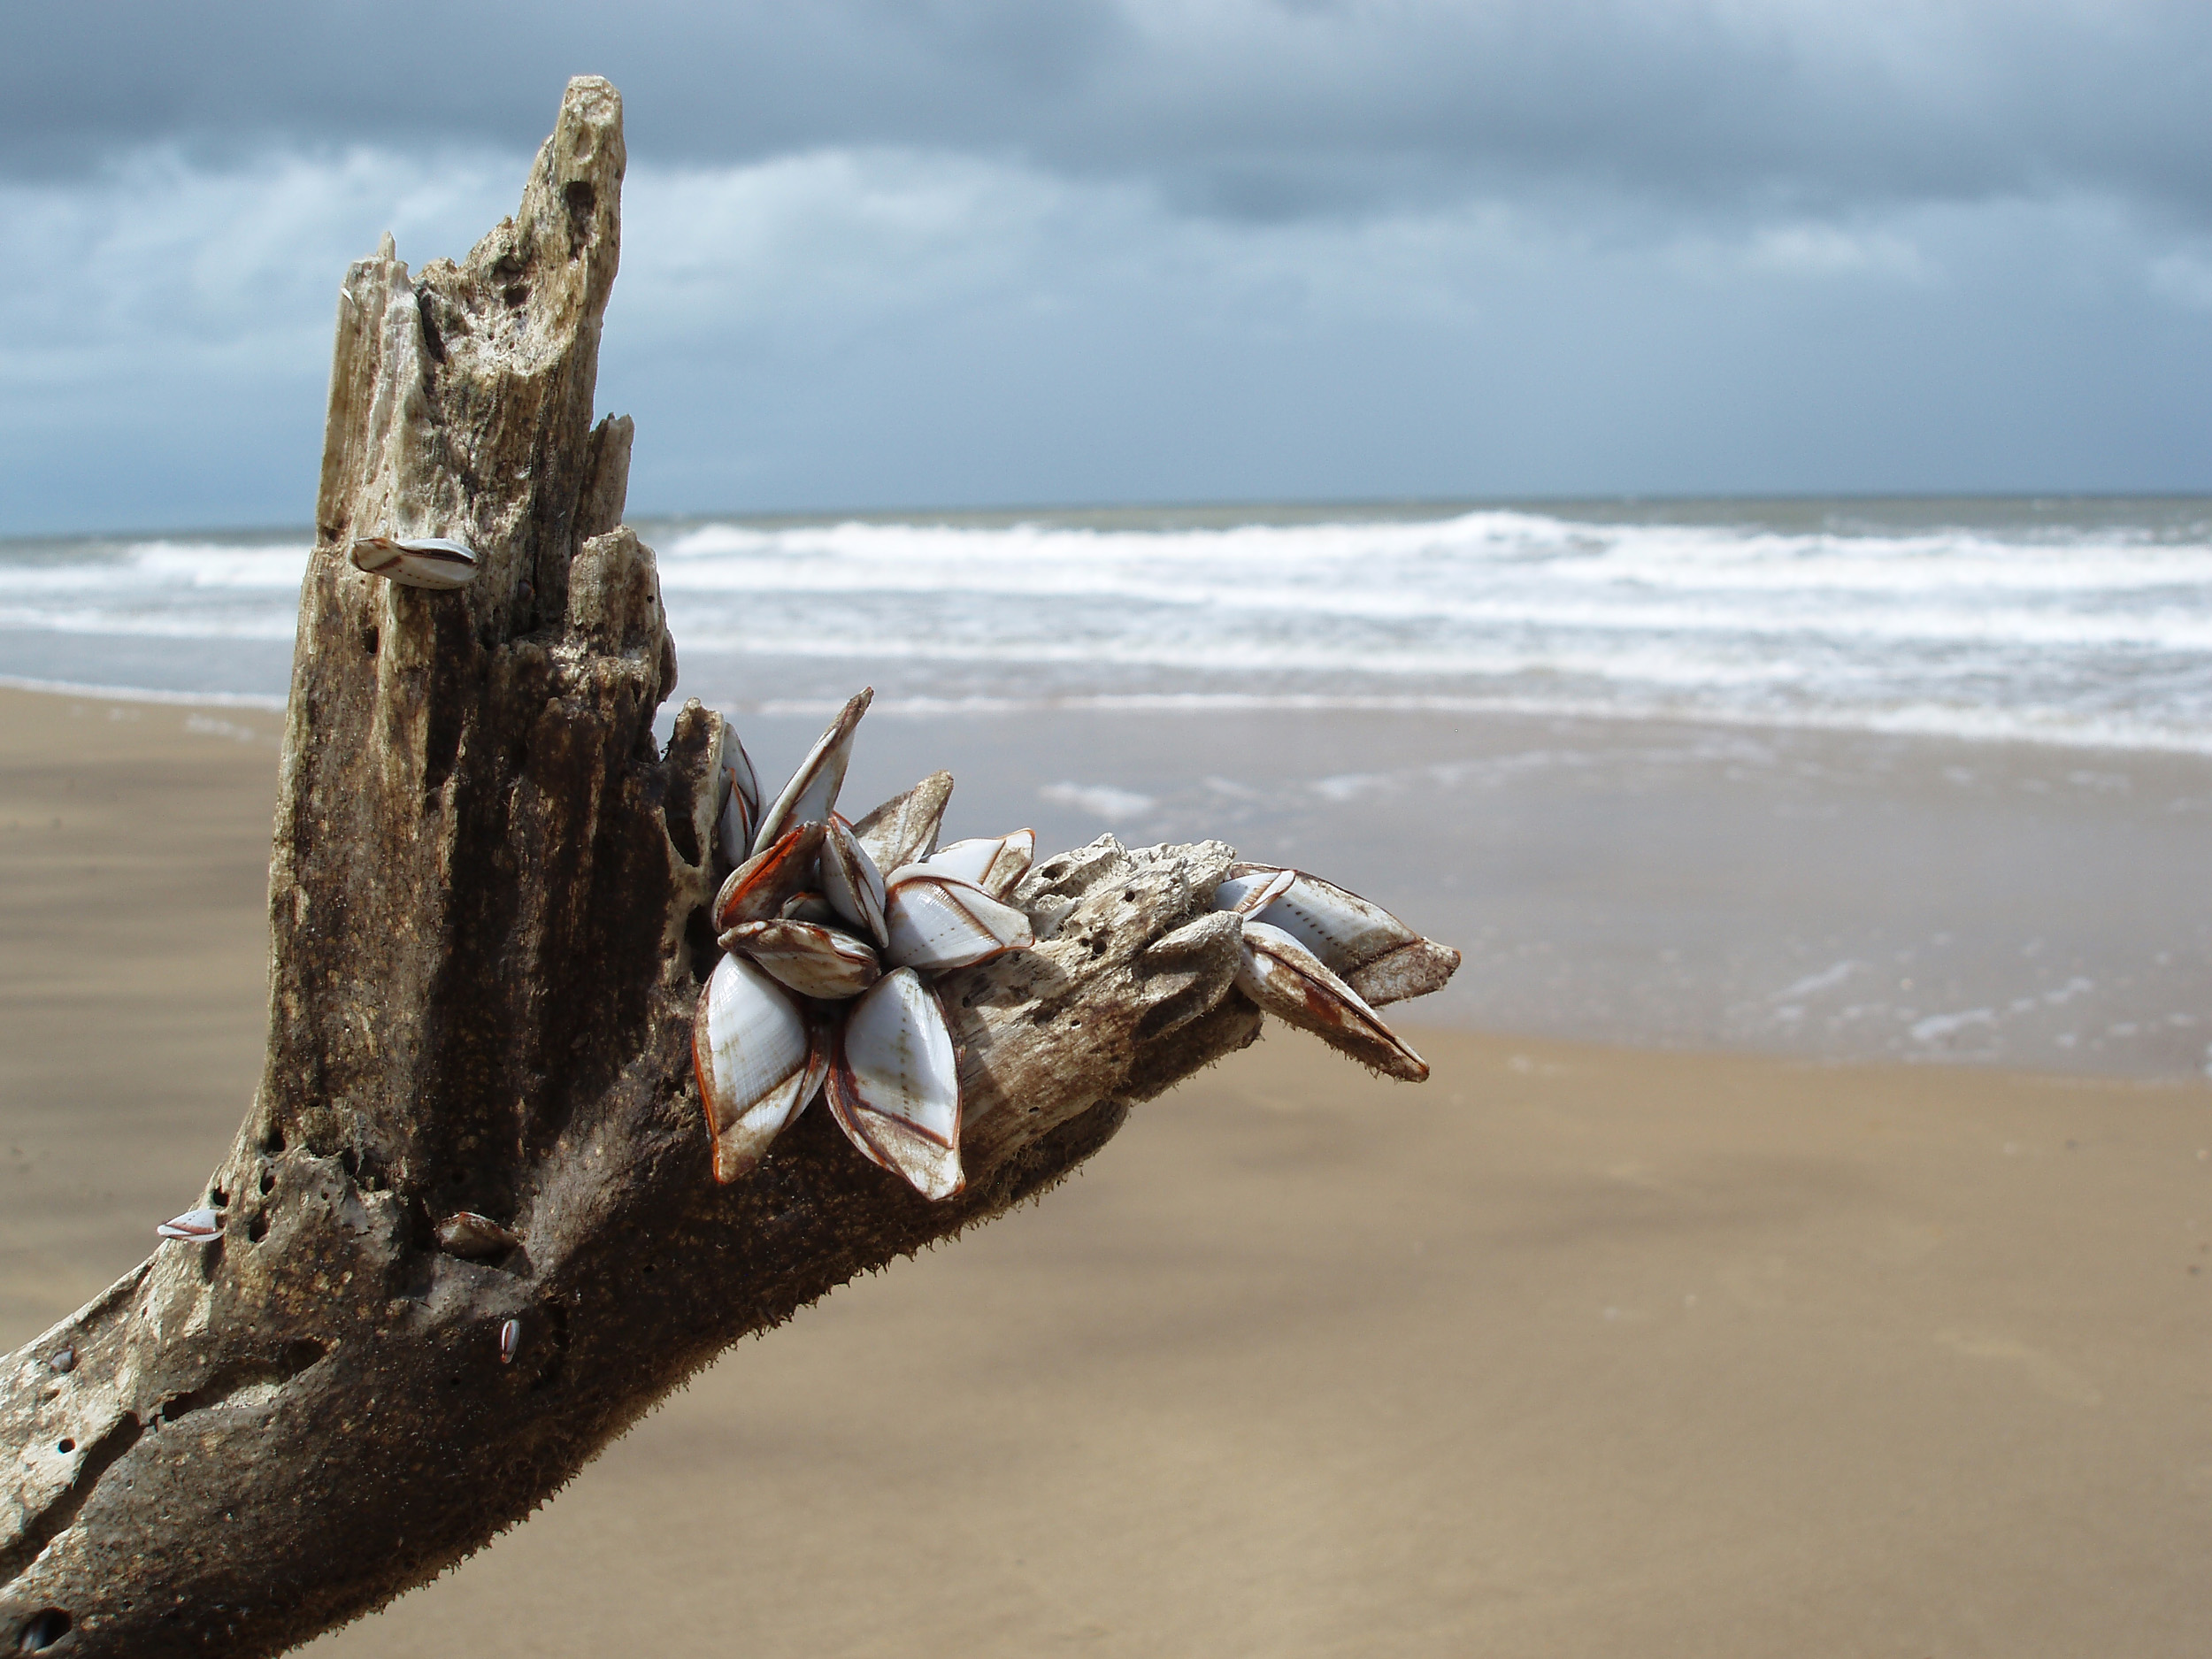 muscles growing on a piece of driftwood washed up on the beach at mission beach, QLD